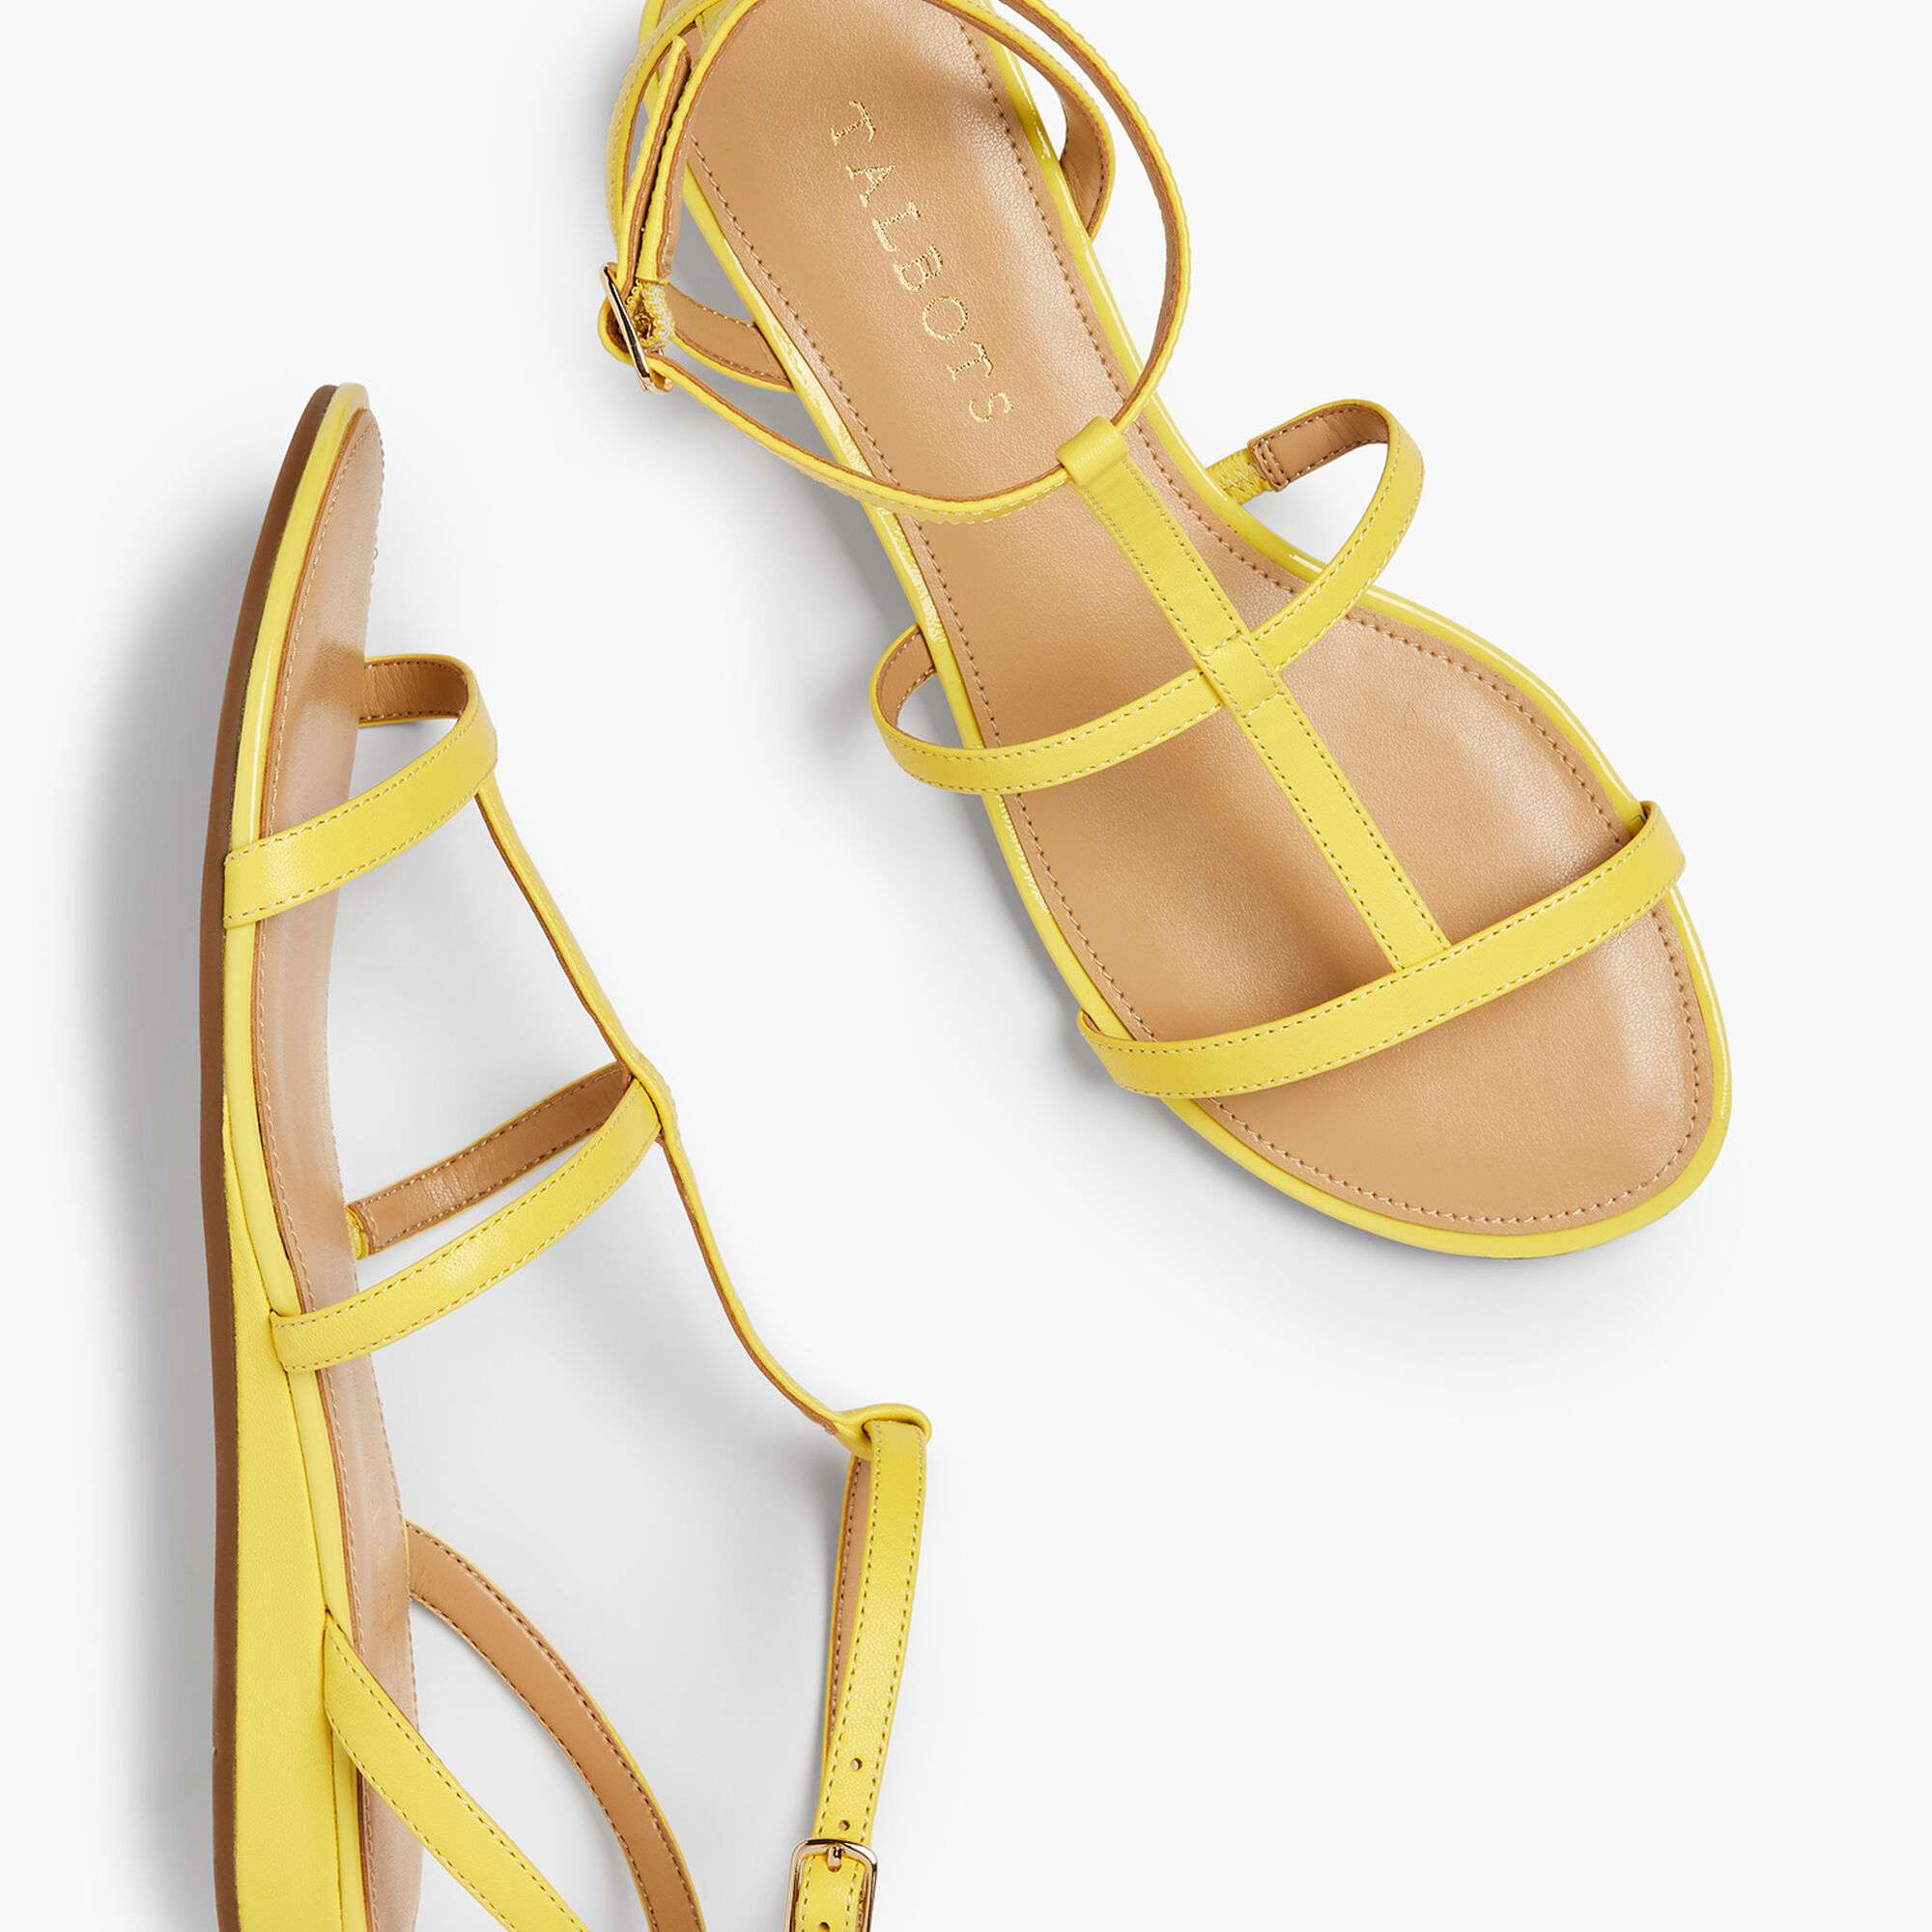 24c4d72f561 Daisy Gladiator Micro-Wedge Sandals - Nappa Leather Opens a New Window.